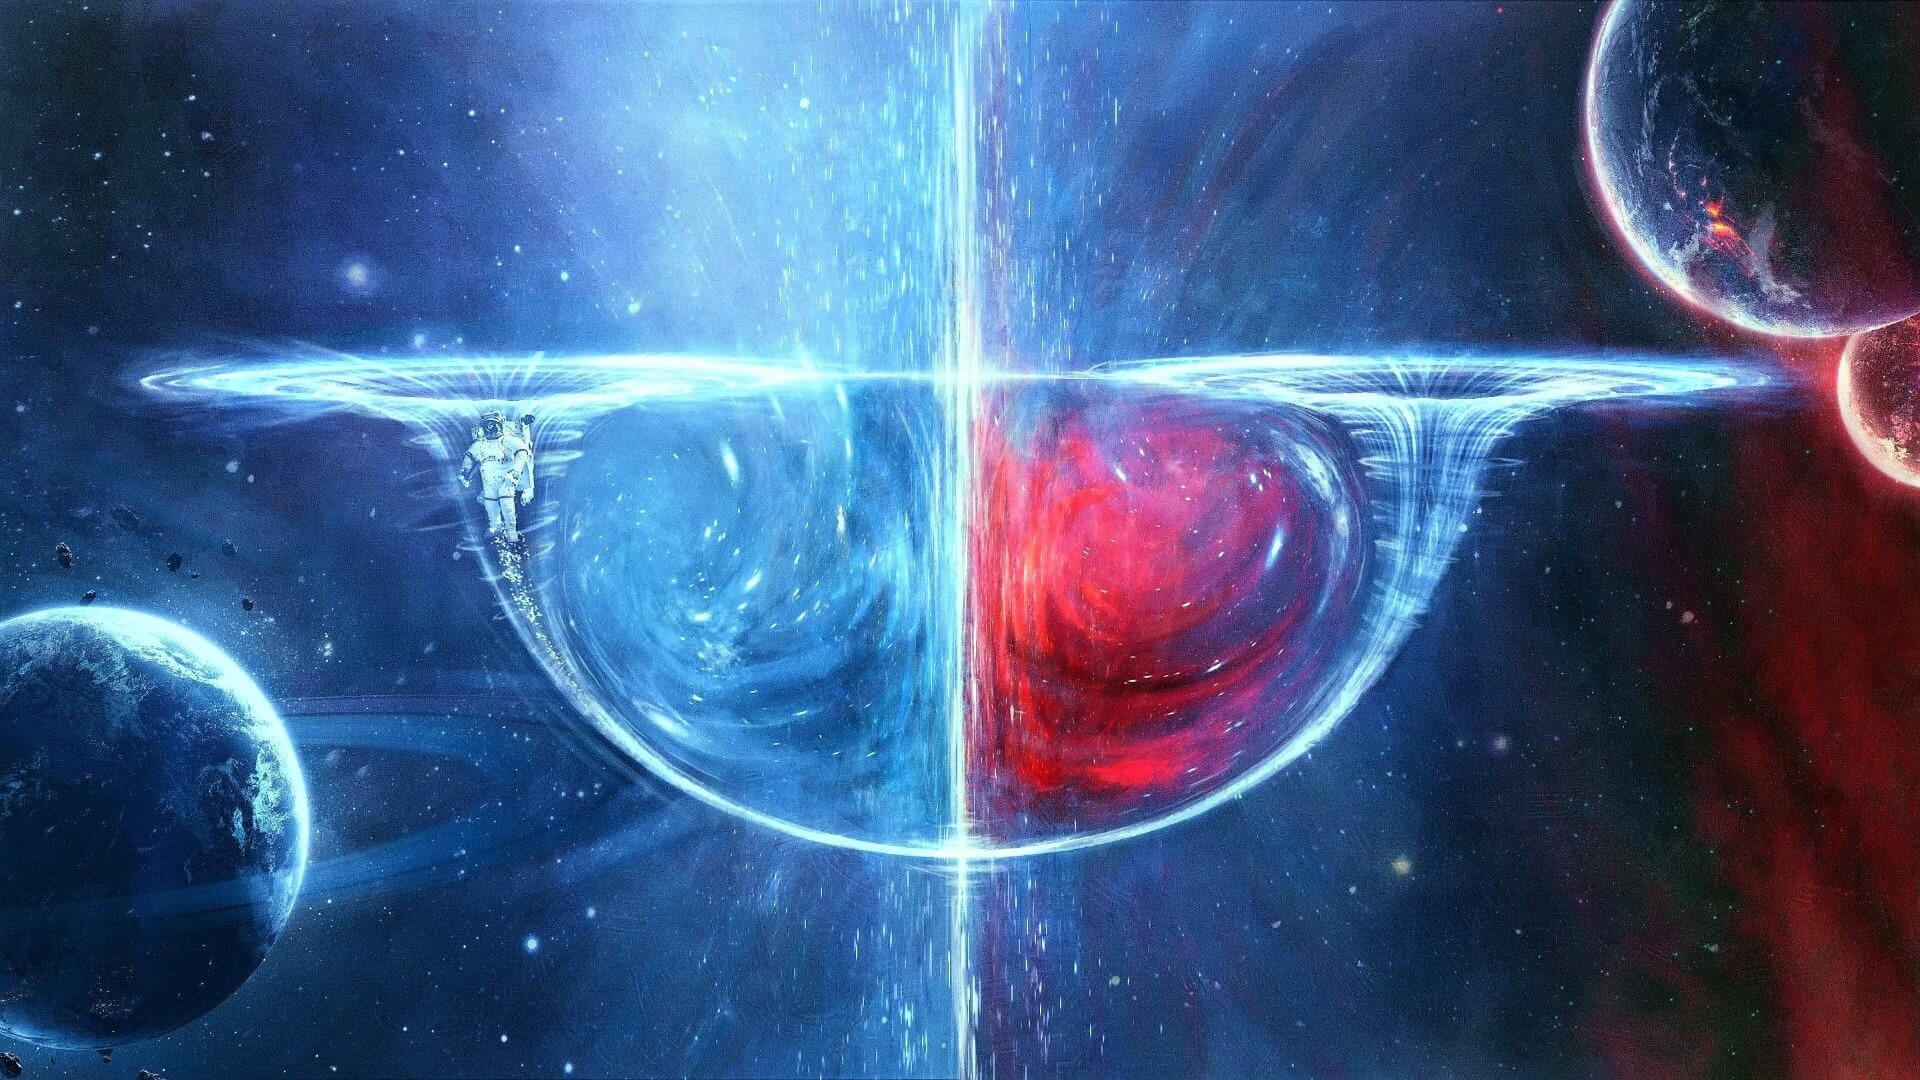 Wormholes in The Quran